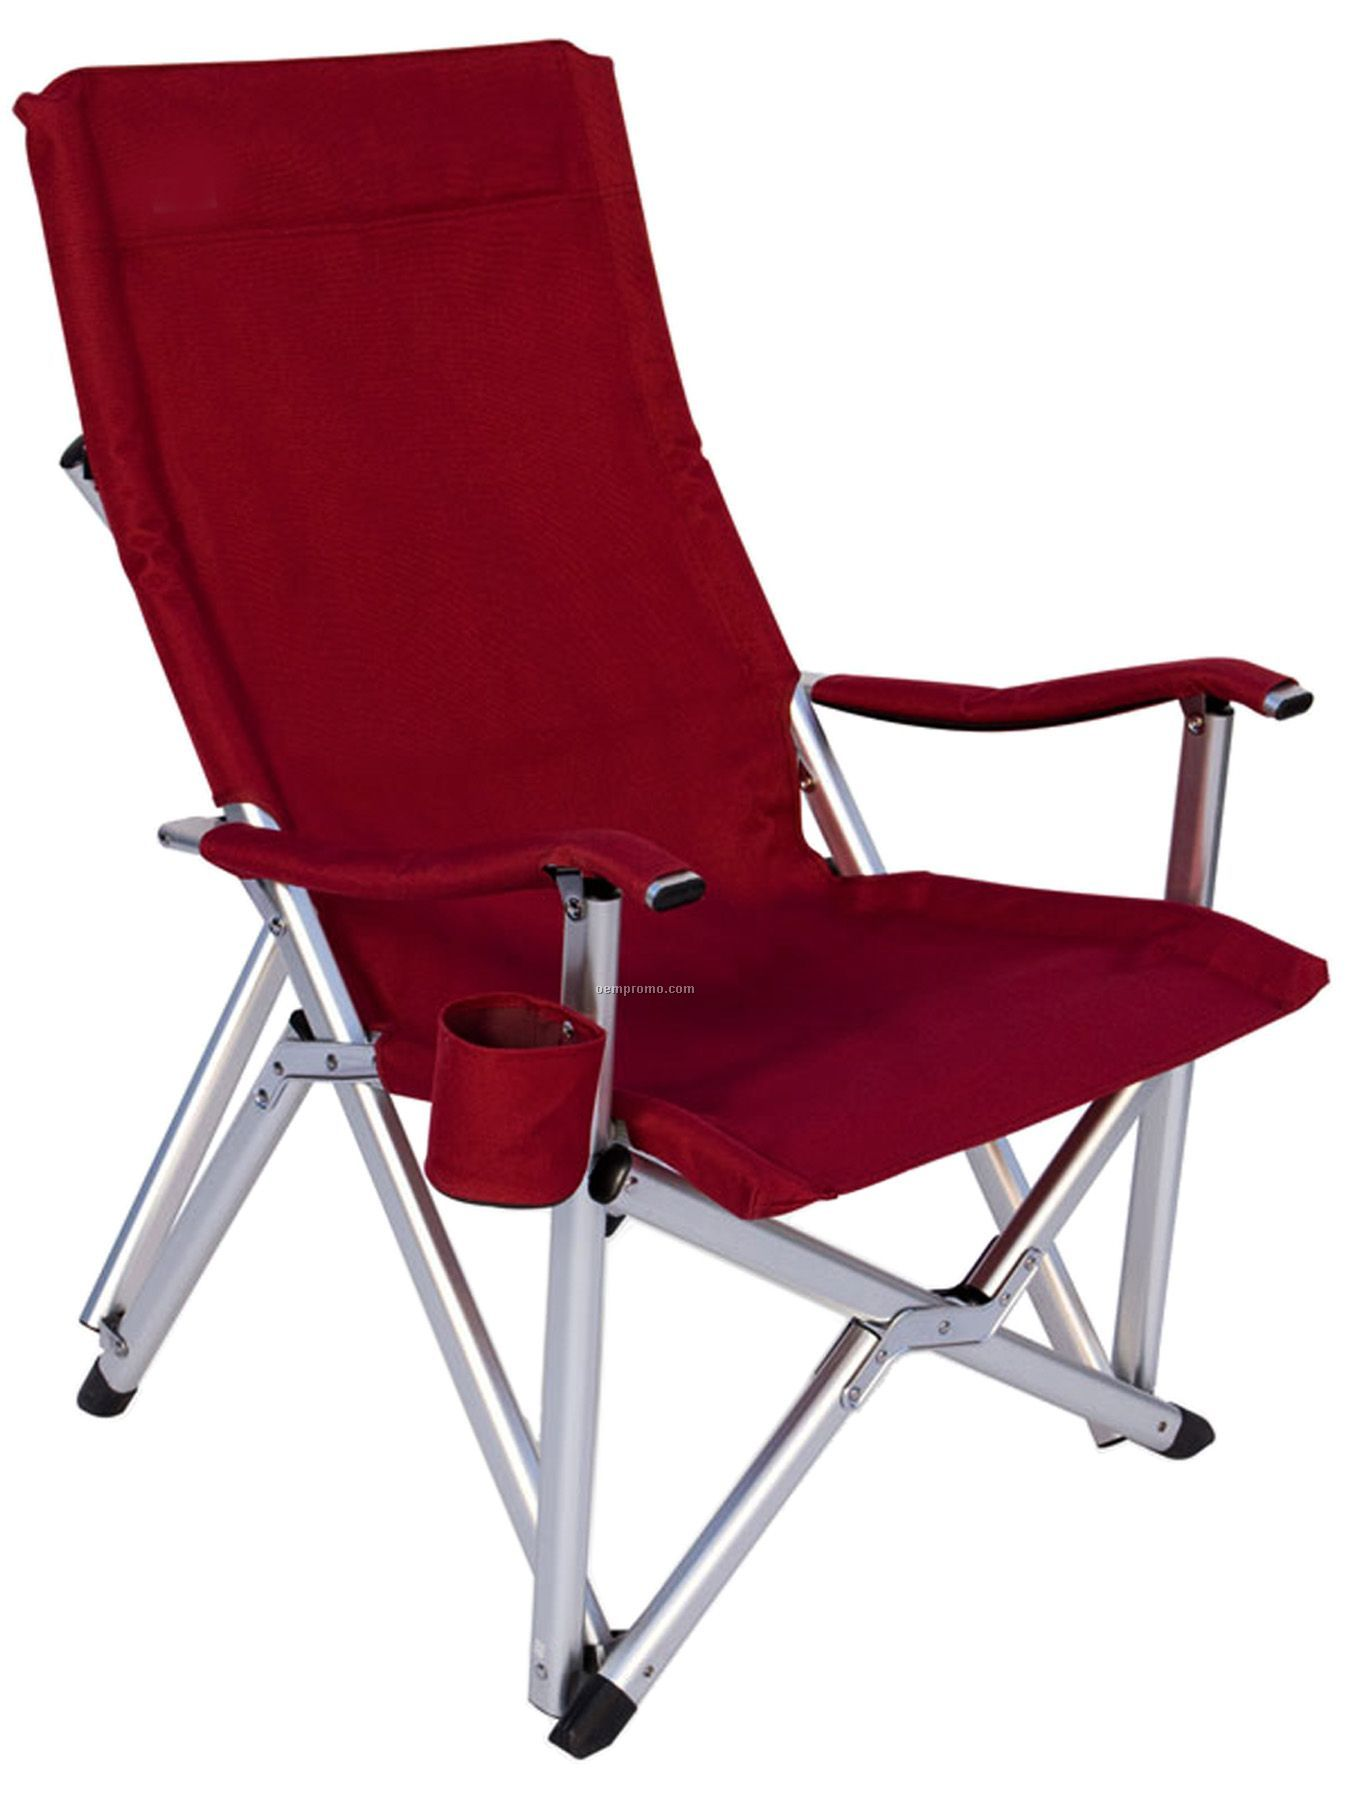 Imported Deluxe Folding High Back Aluminum Arm Chair W 375 Lb